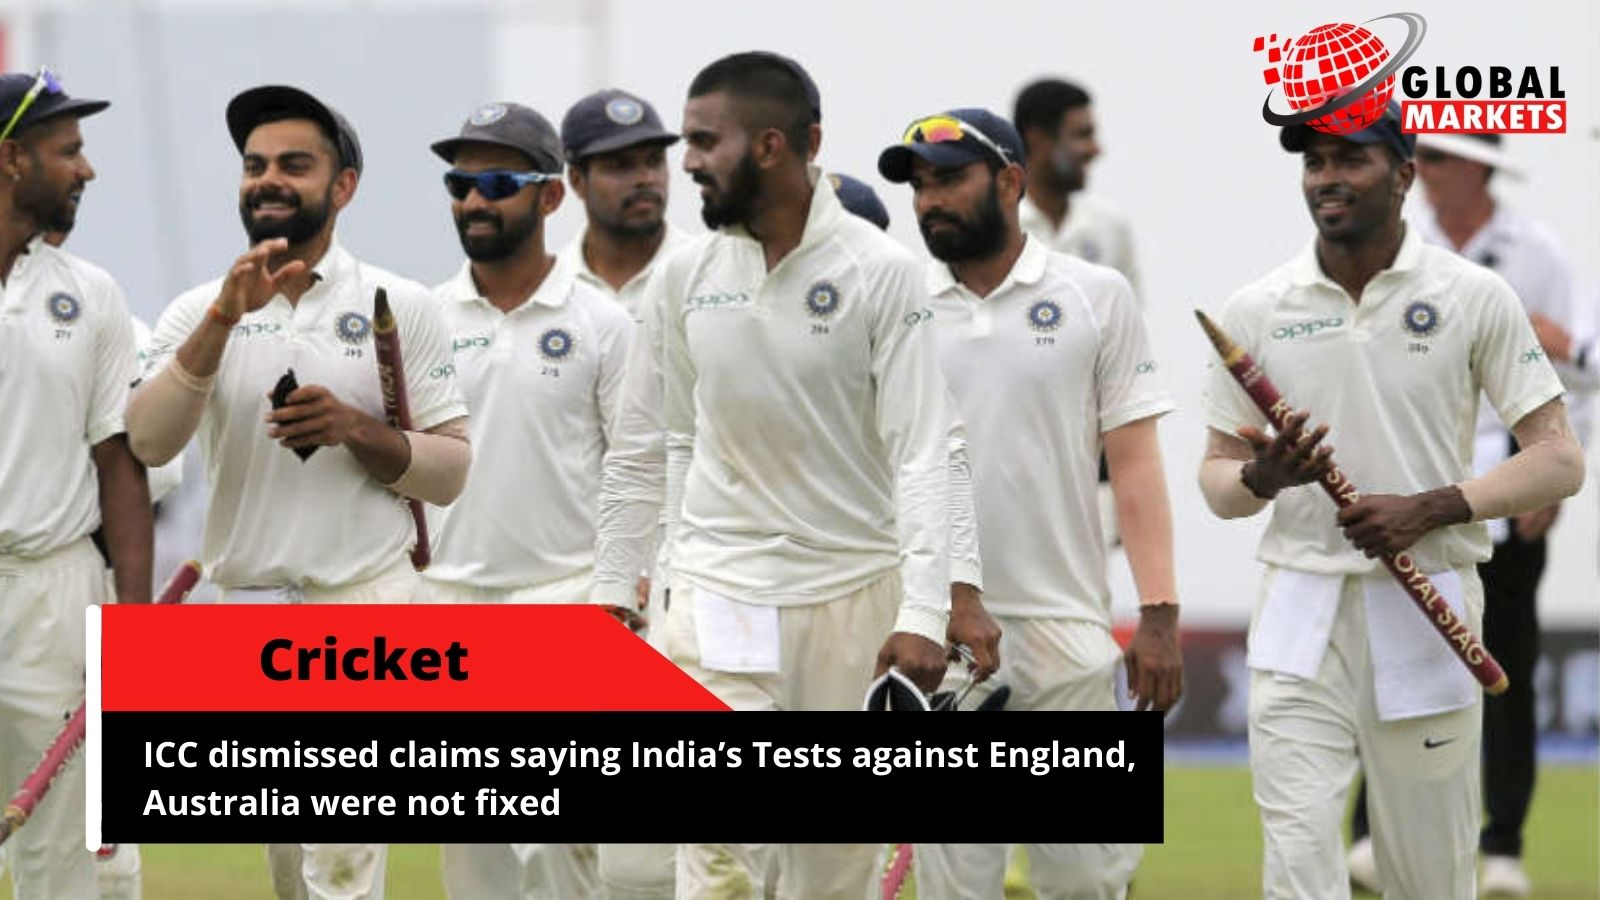 ICC dismissed claims saying India's Tests against England, Australia were not fixed